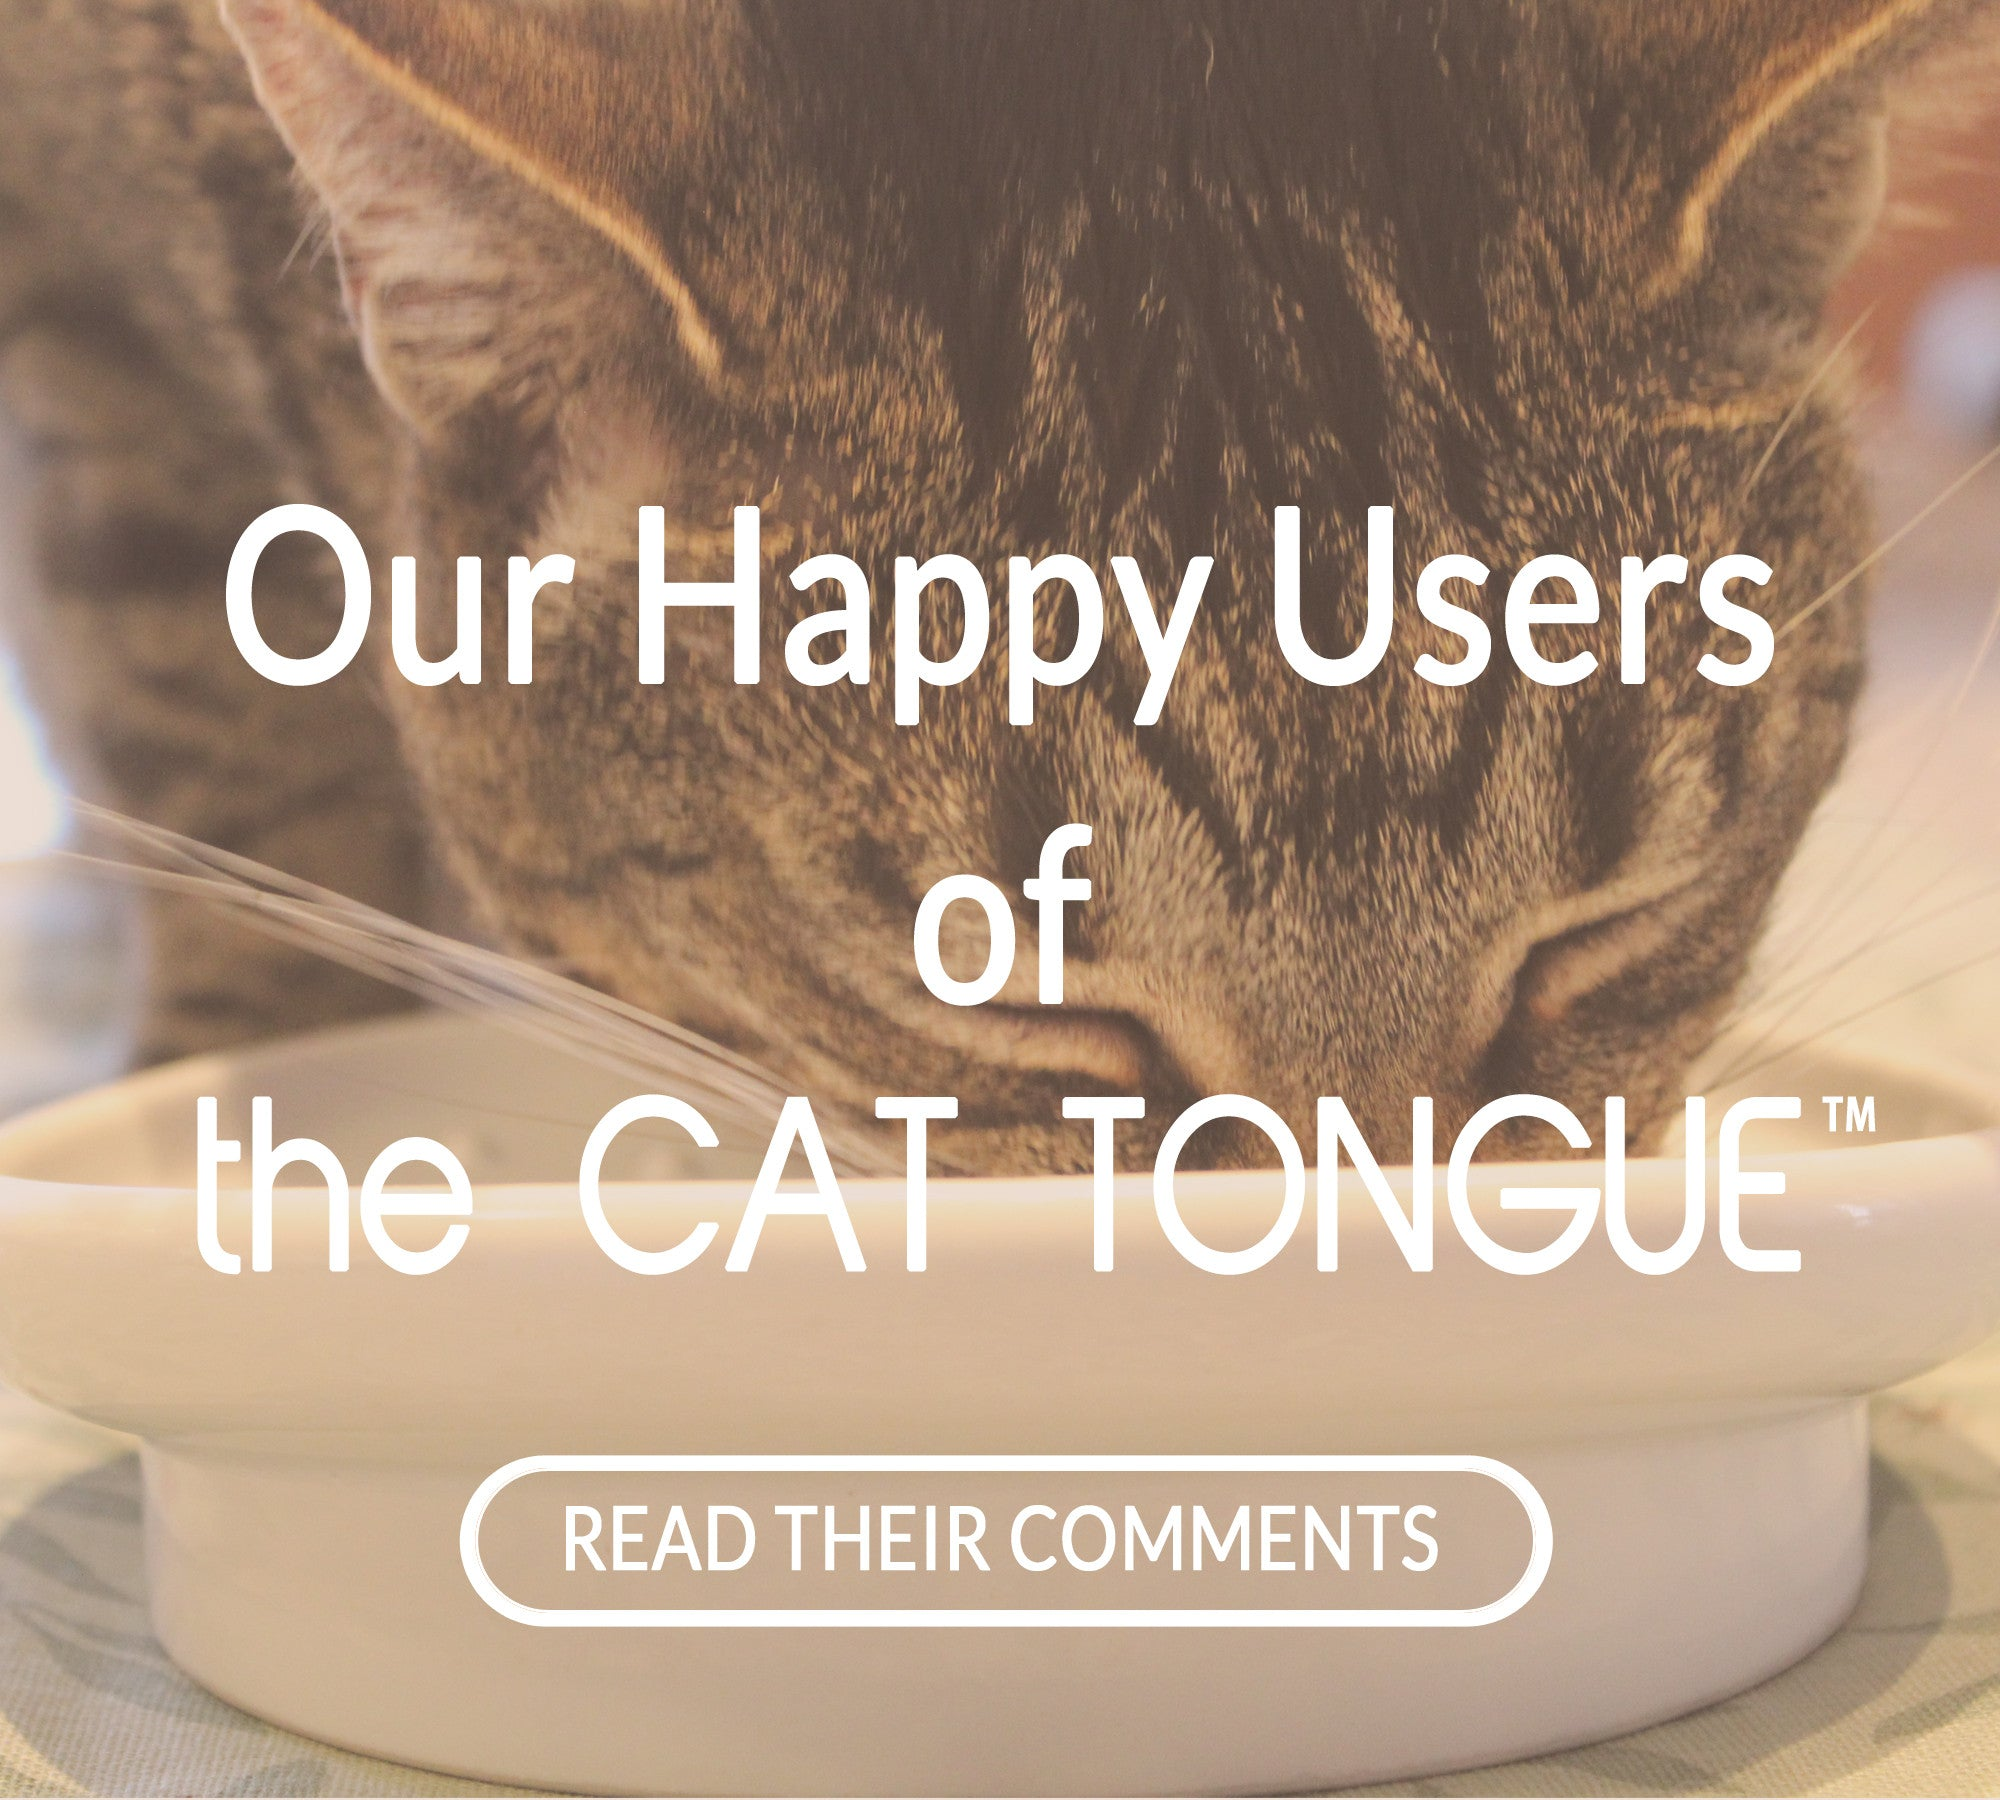 Our Happy User comements